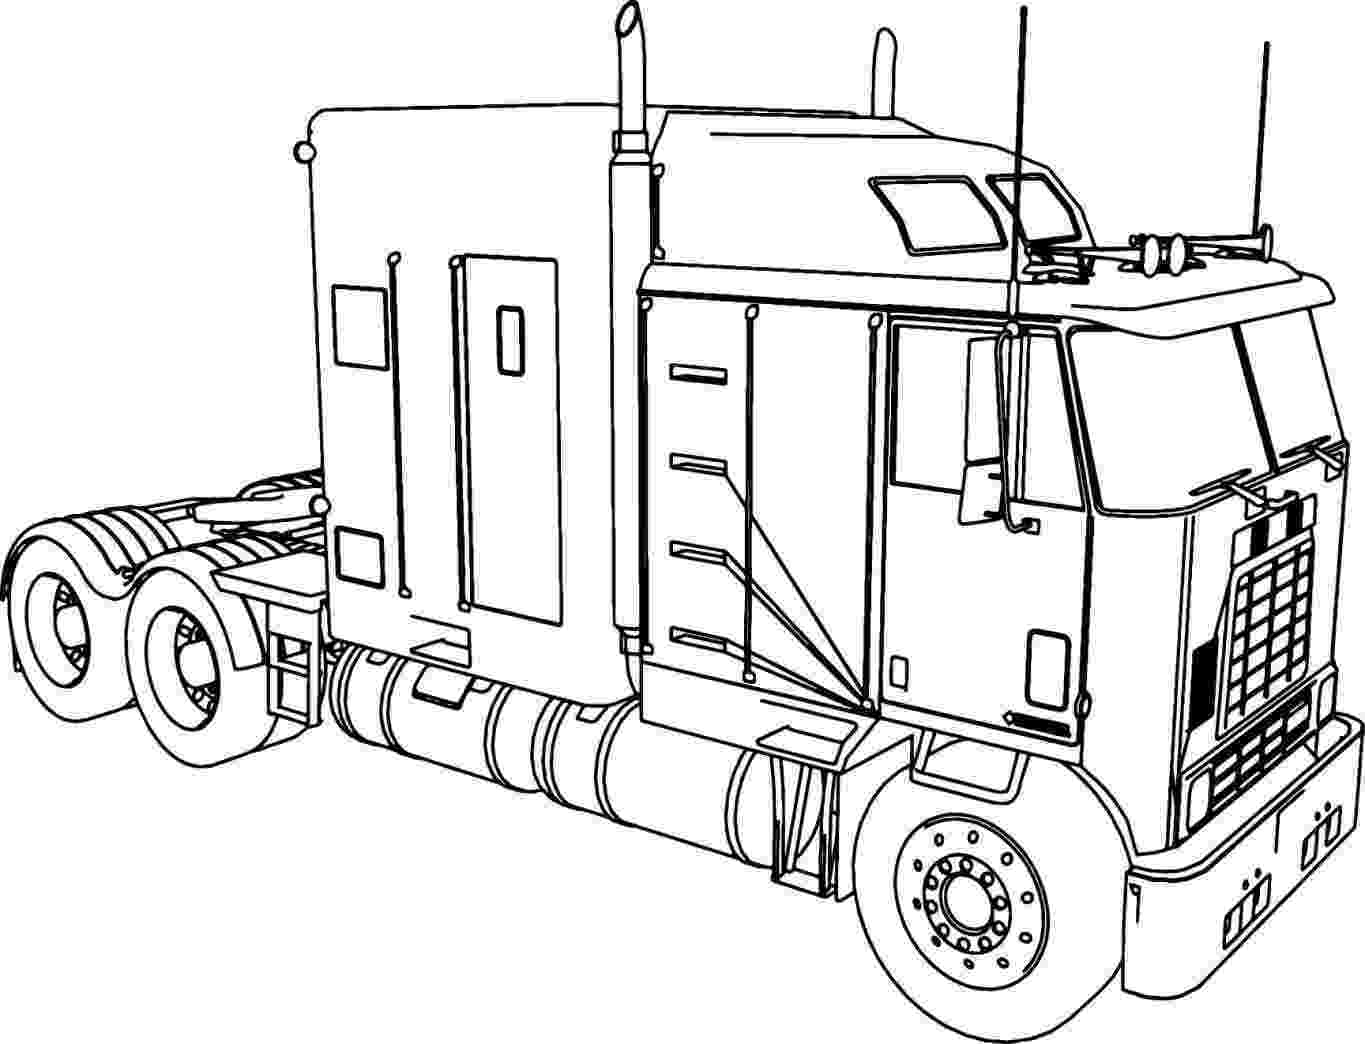 printable coloring pages trucks 40 free printable truck coloring pages download coloring pages trucks printable